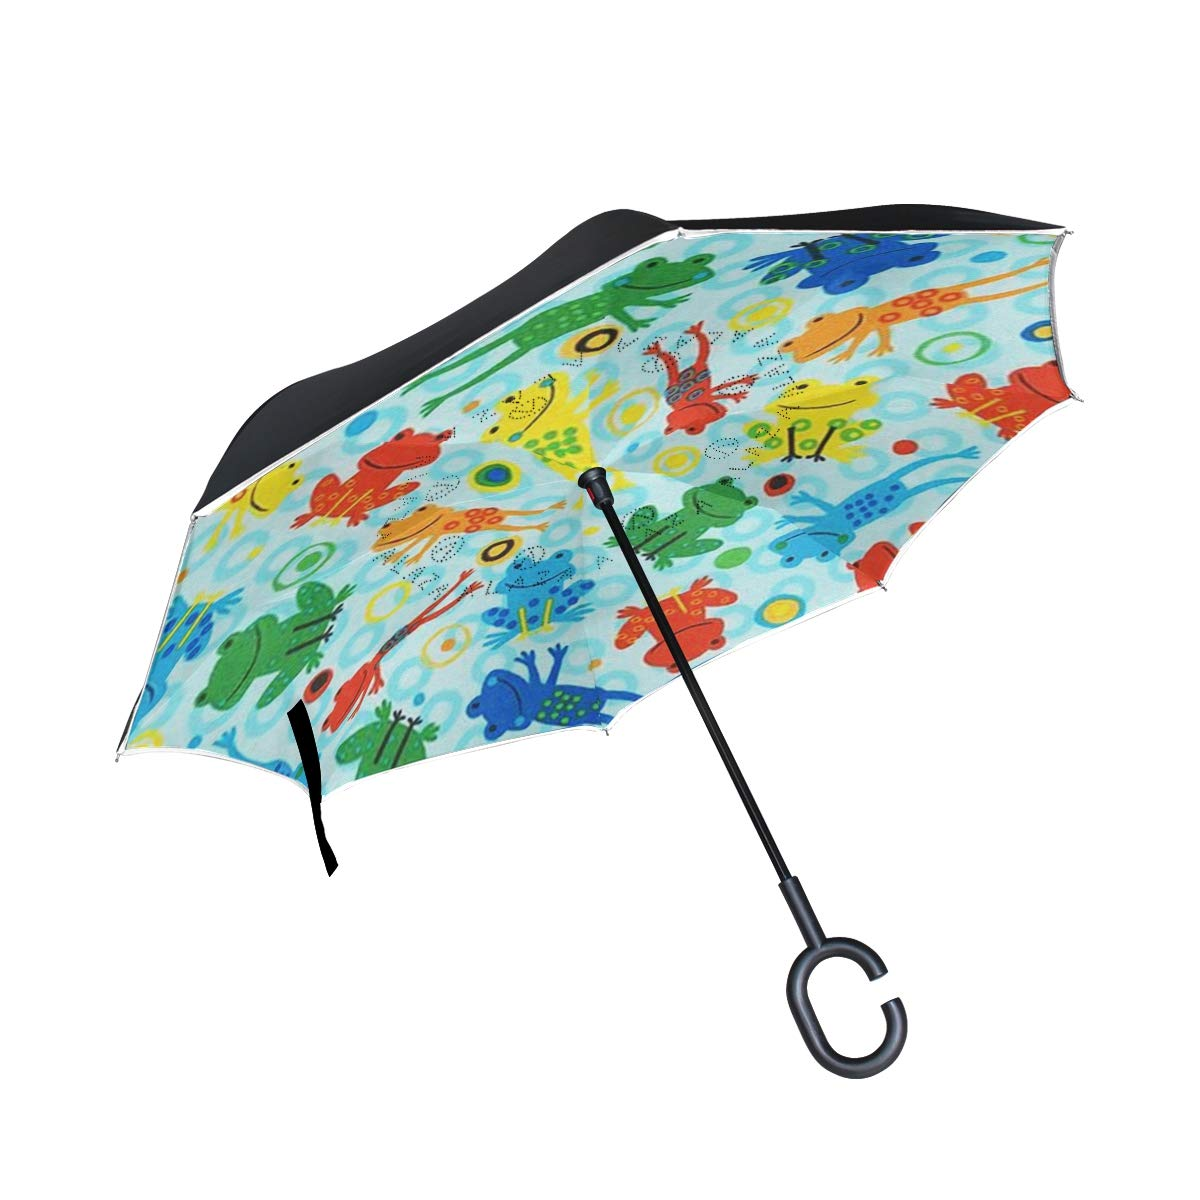 DOPKEEP Jump Into Fun Double Layer Inverted Umbrella Cars Reverse Umbrella,UV Protection Windproof Large Straight Umbrella for Car Rain Outdoor with C-Shaped Handle